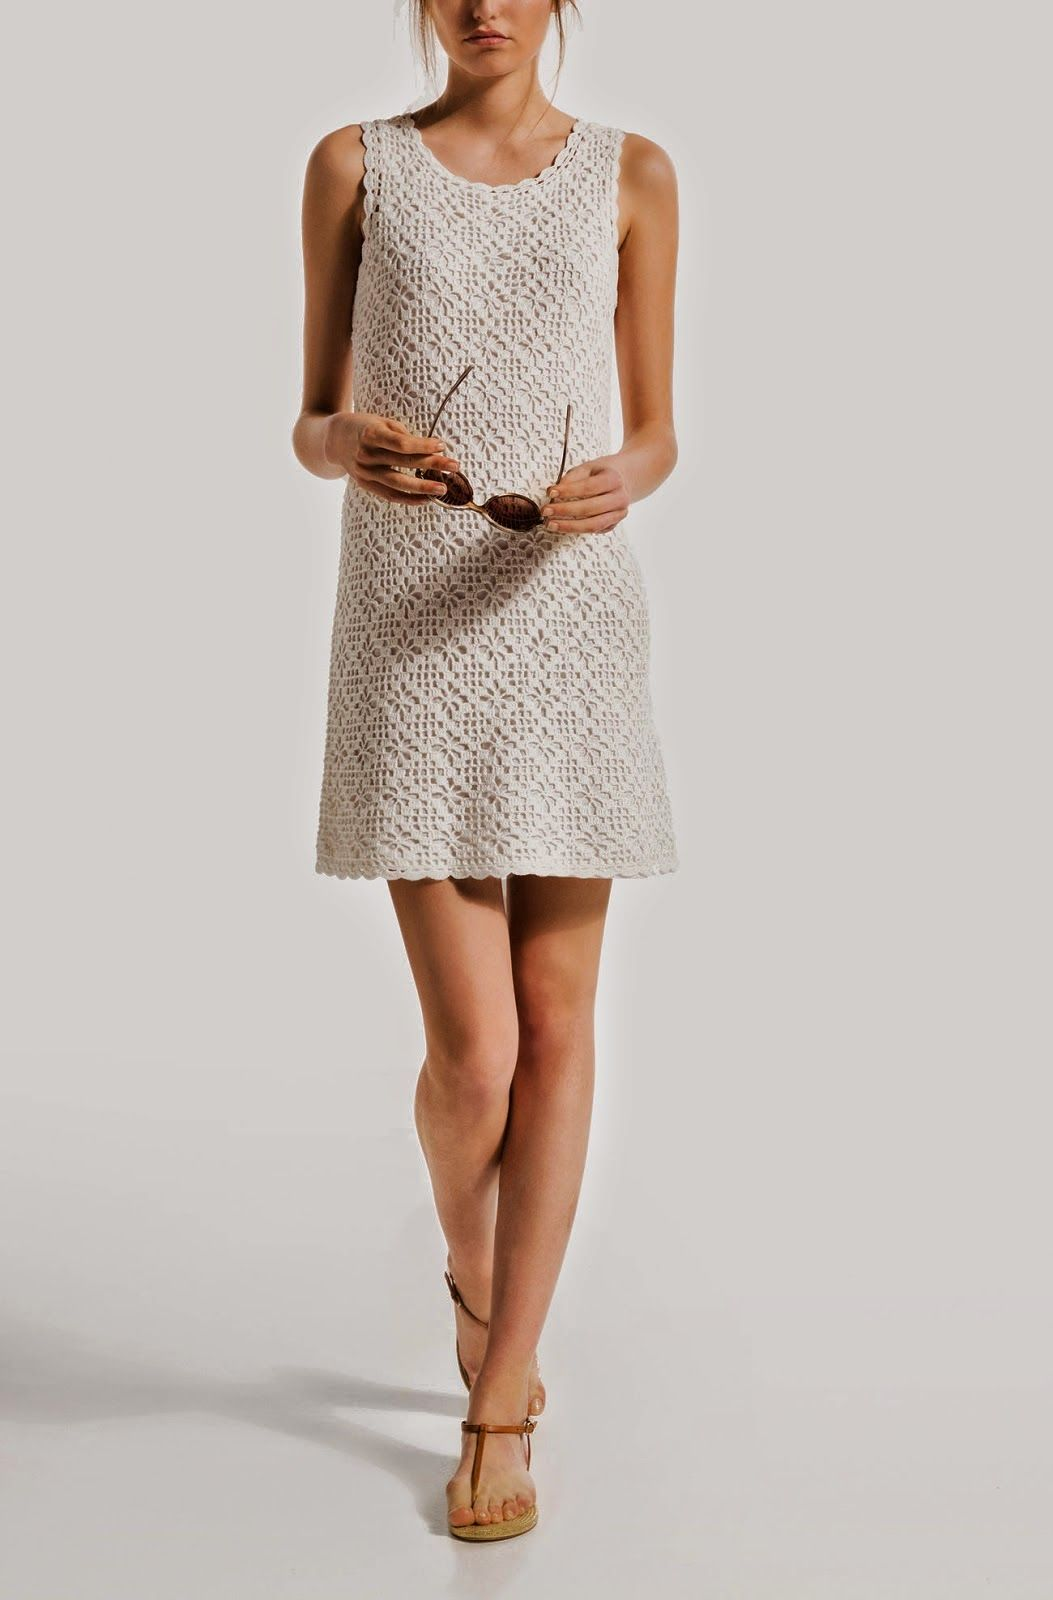 Free Crochet Pattern for Classic Casual and Chic Summer Dress ...